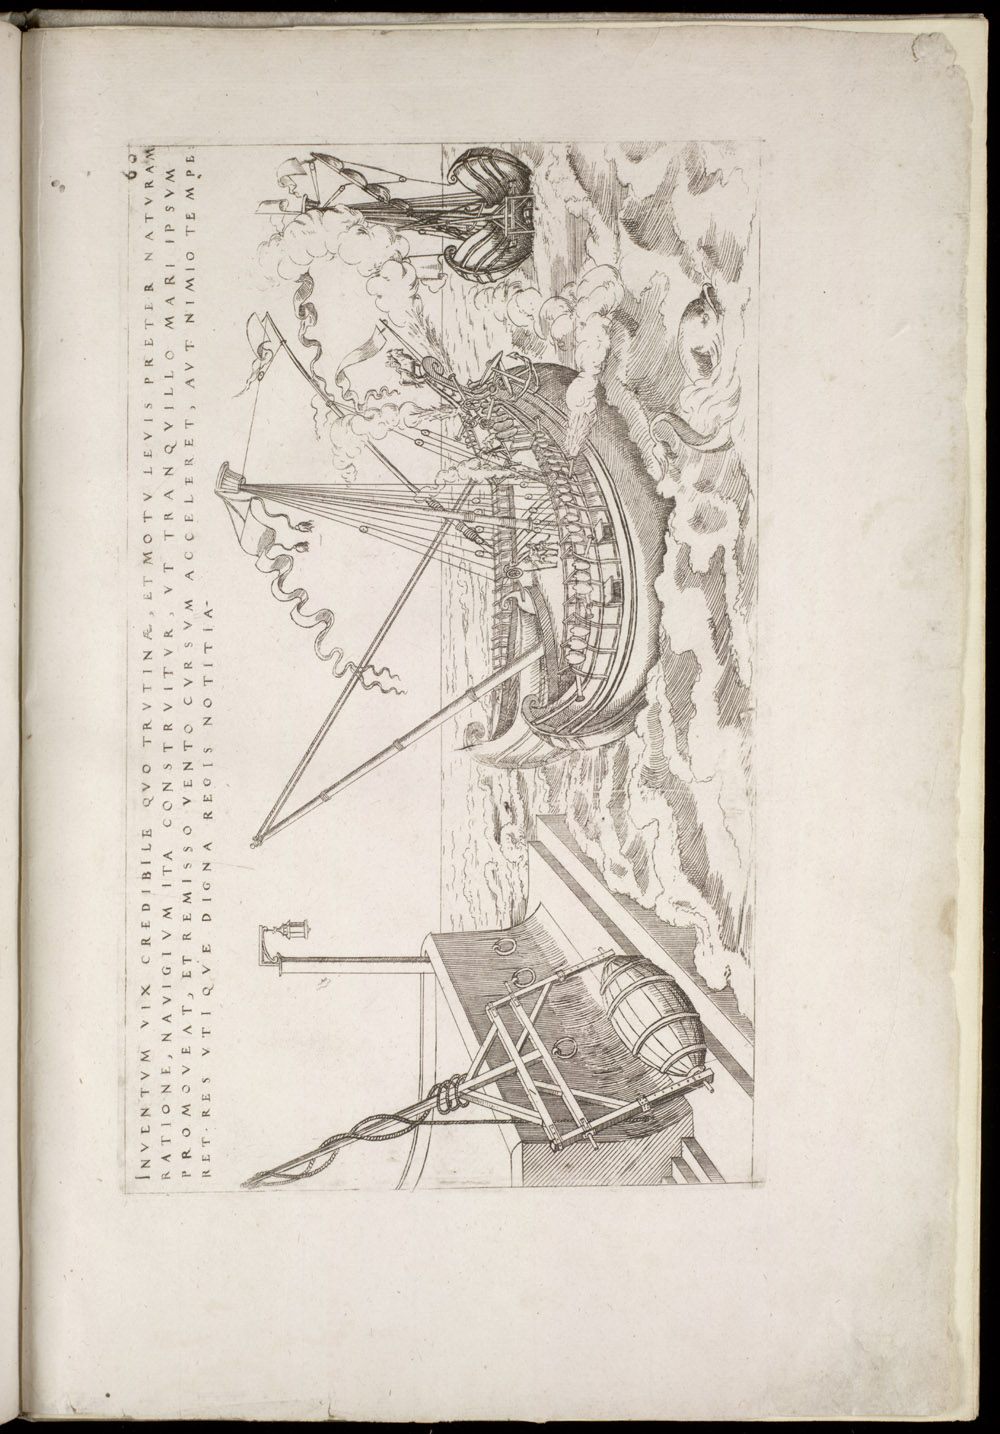 Plate 60 [Lever-driven ship with bifurcated hull],  Image number:SIL4-2-153a